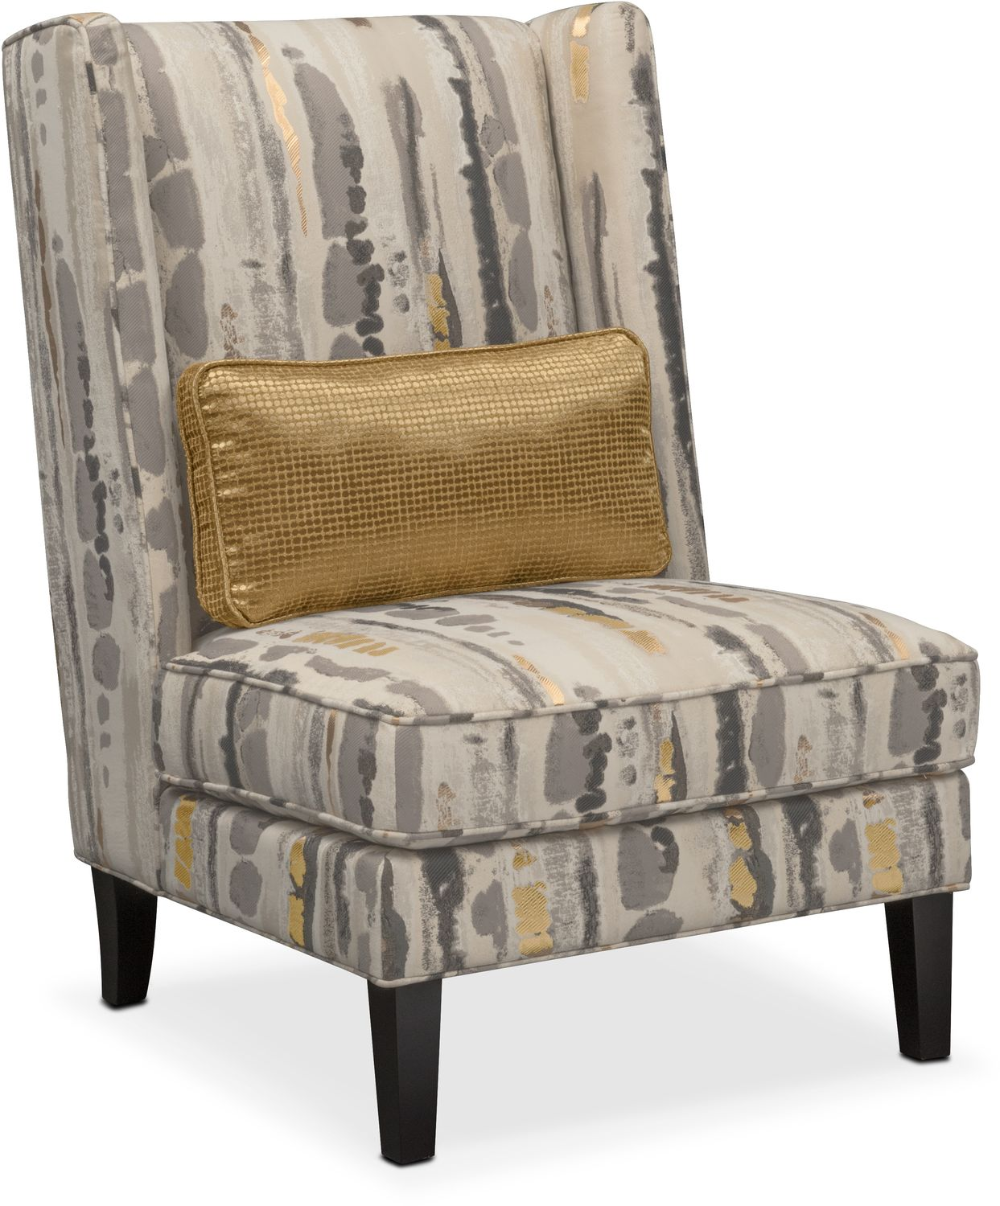 Limelight Accent Chair In 2020 Furniture Accent Chairs Accent Chairs For Living Room #value #city #living #room #chairs